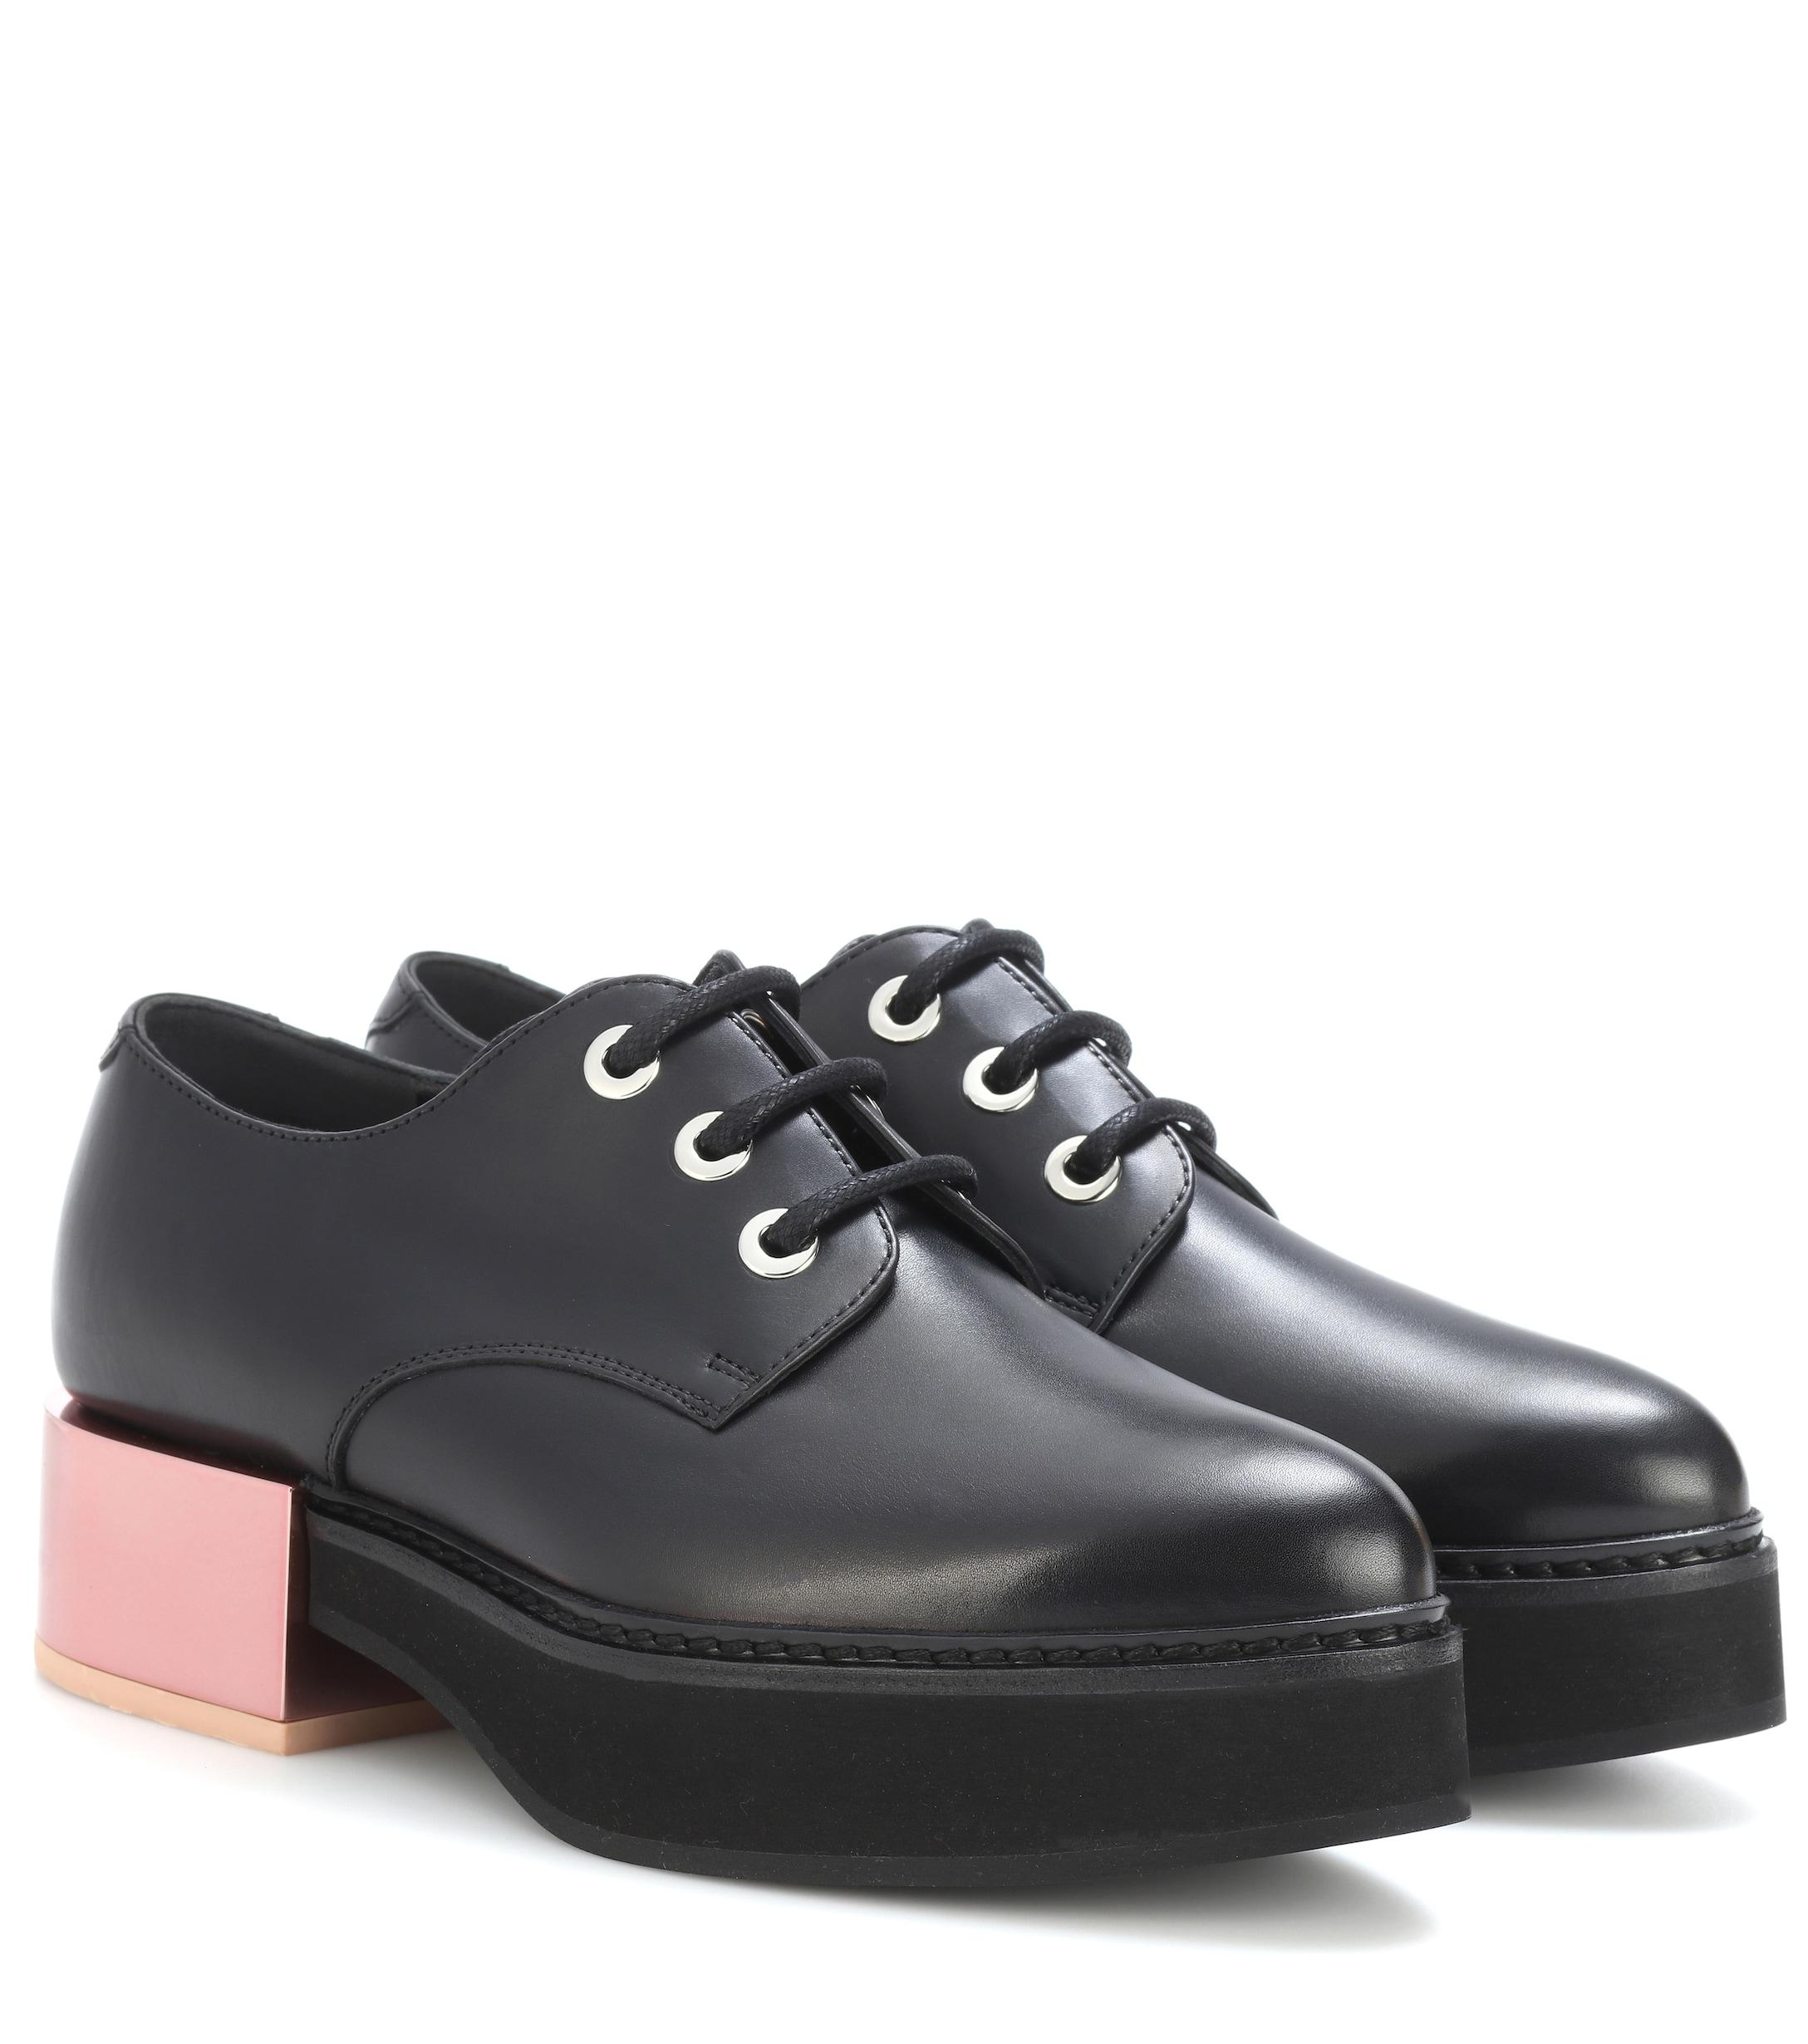 4eeb7b2e13a7 Alexander McQueen Leather Platform Derby Shoes in Black - Lyst